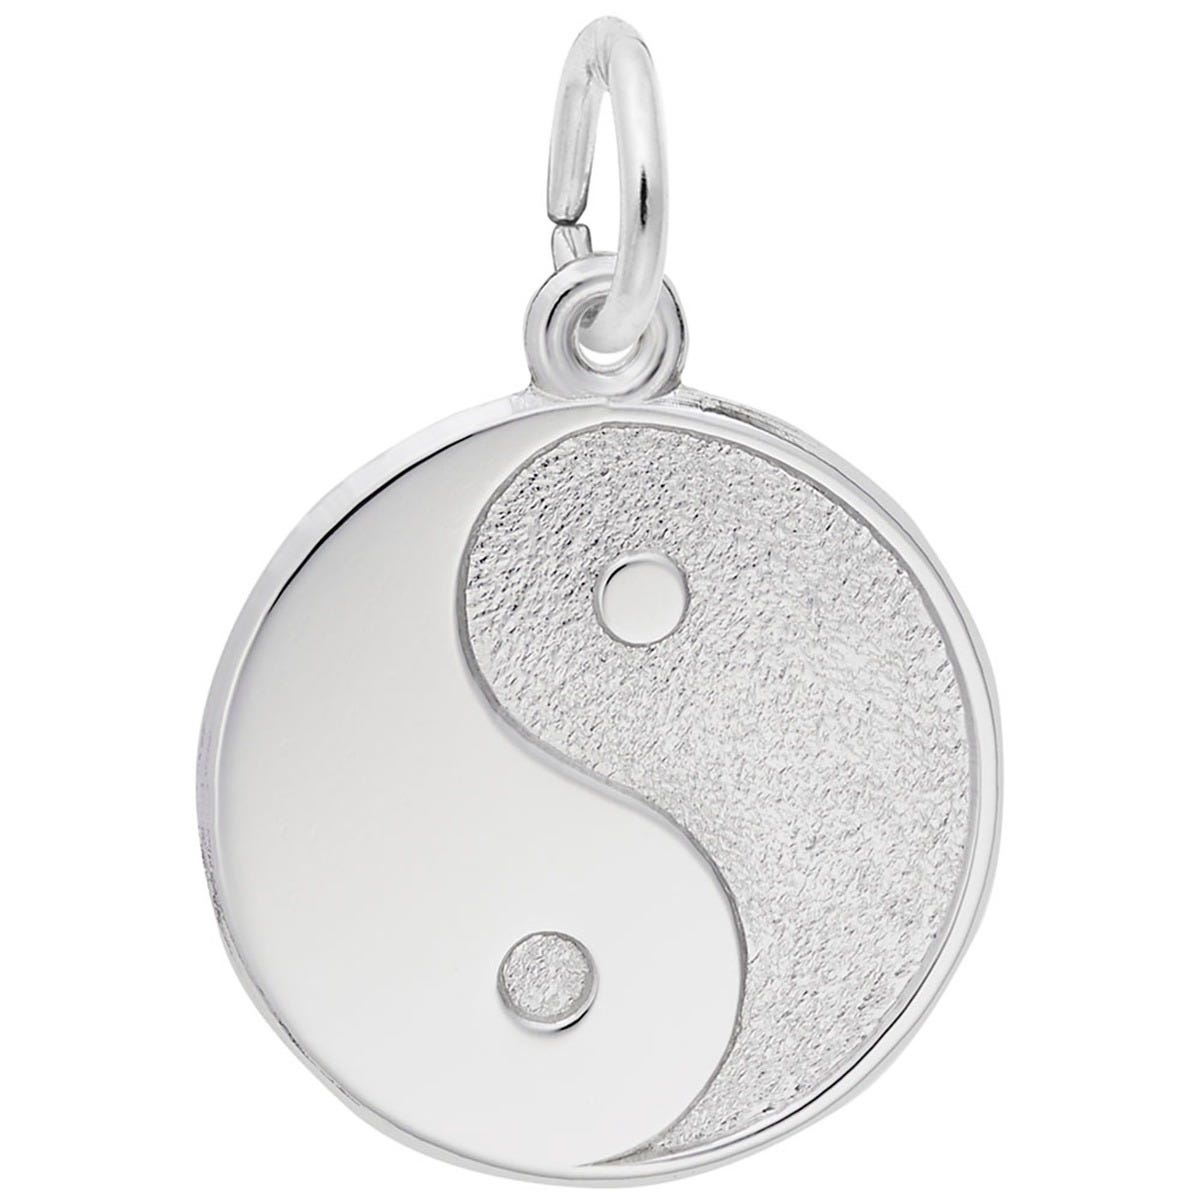 Ying Yang Charm in 14K White Gold